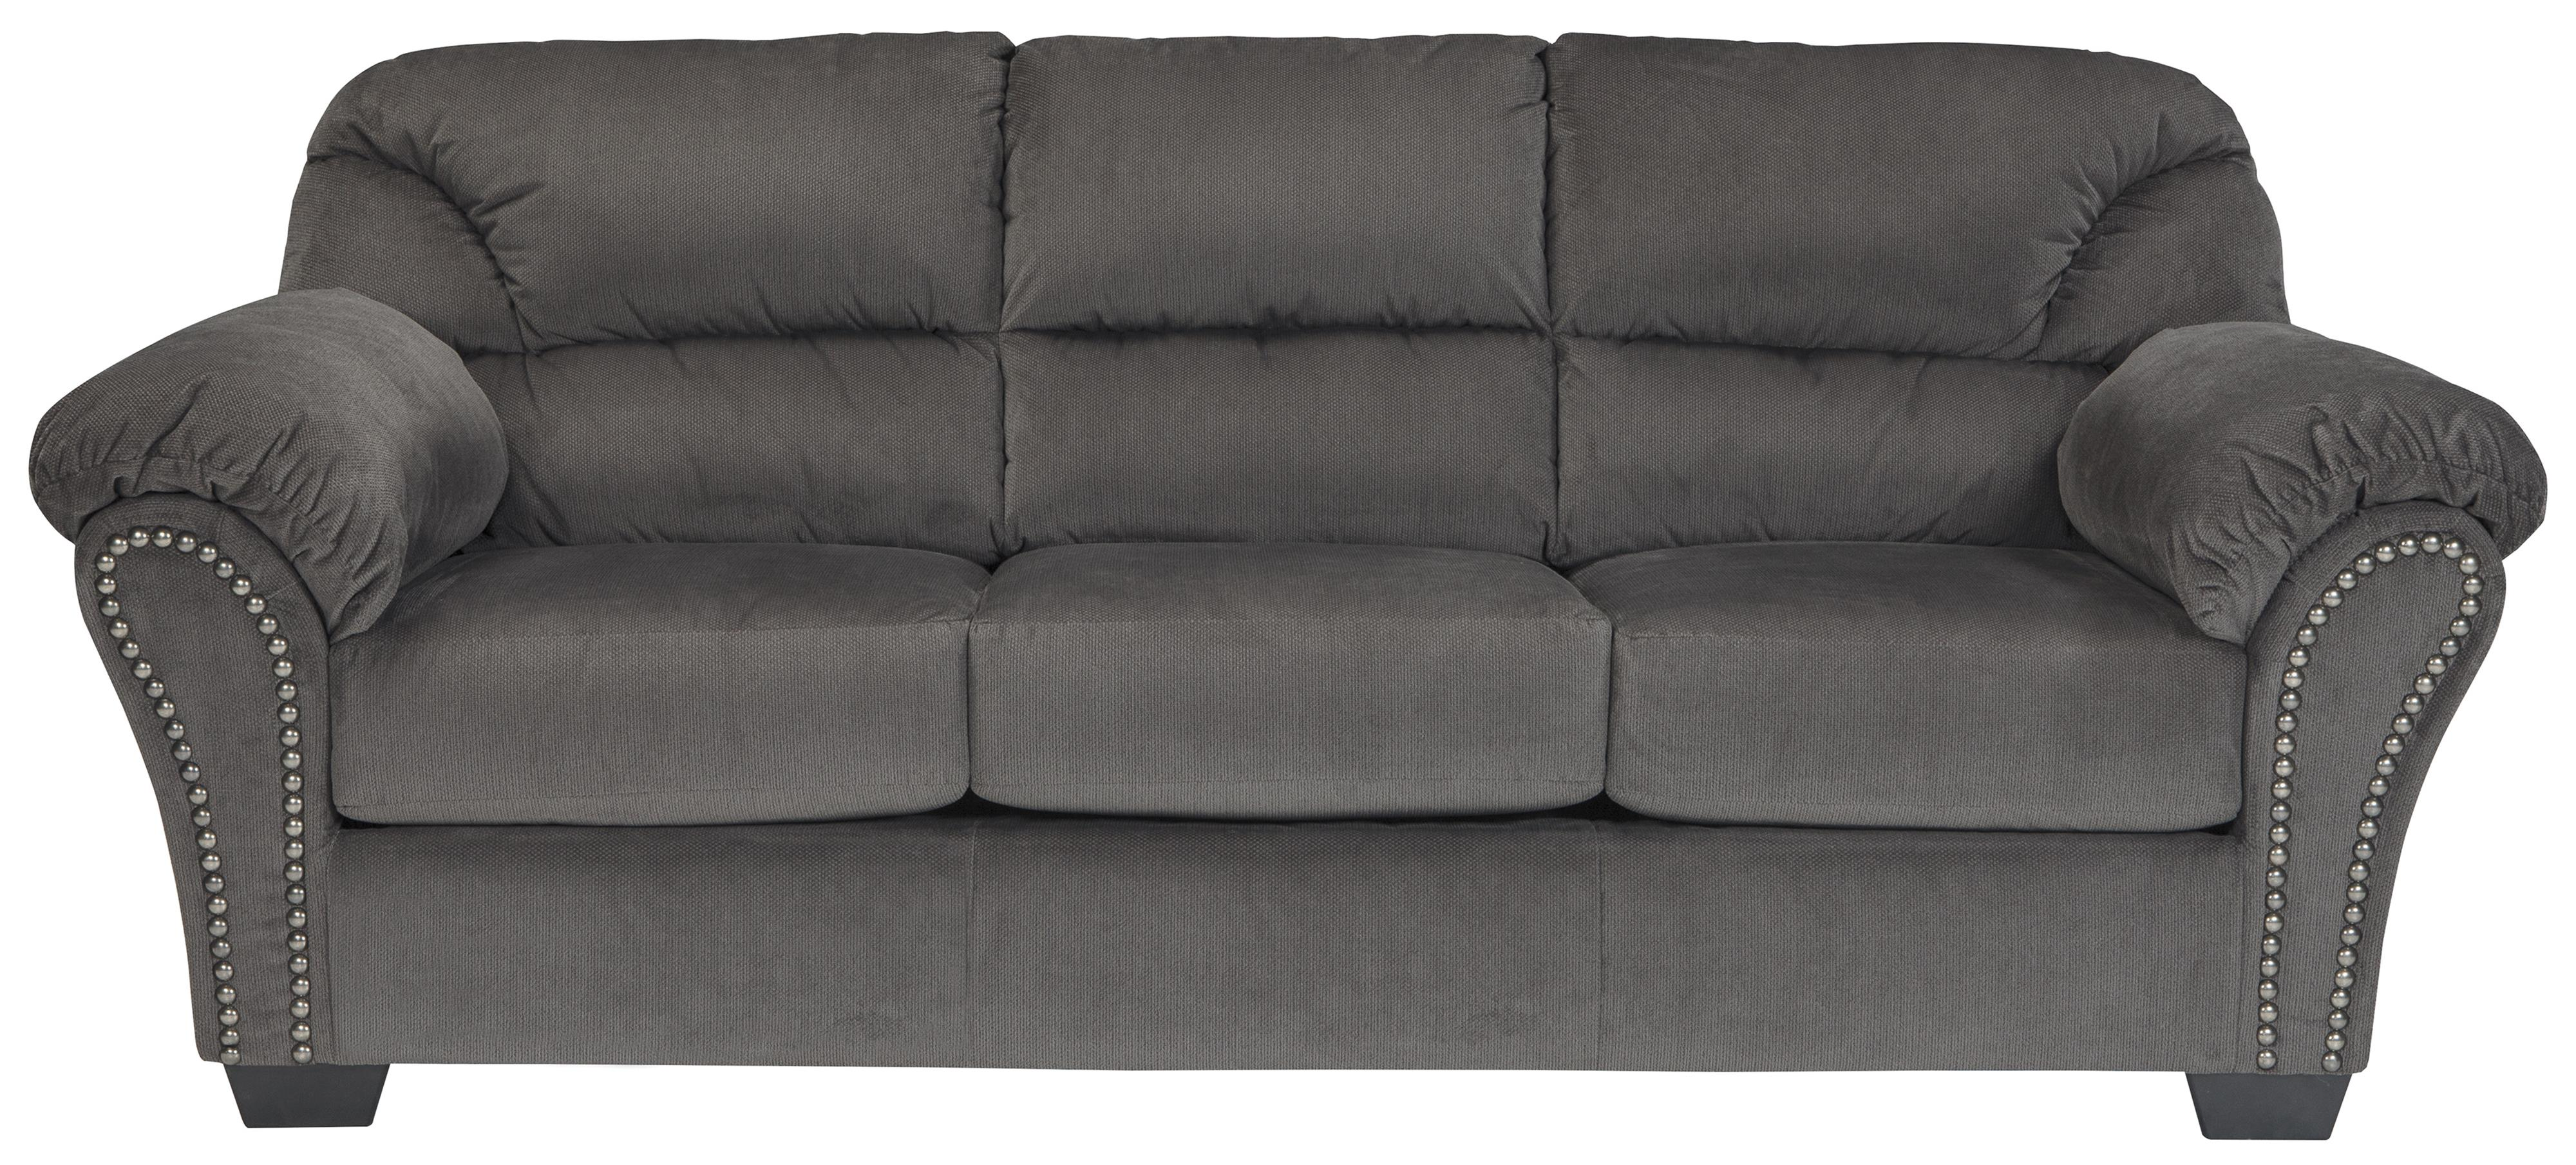 Signature Design by Ashley Kinlock Full Sofa Sleeper - Item Number: 3340036